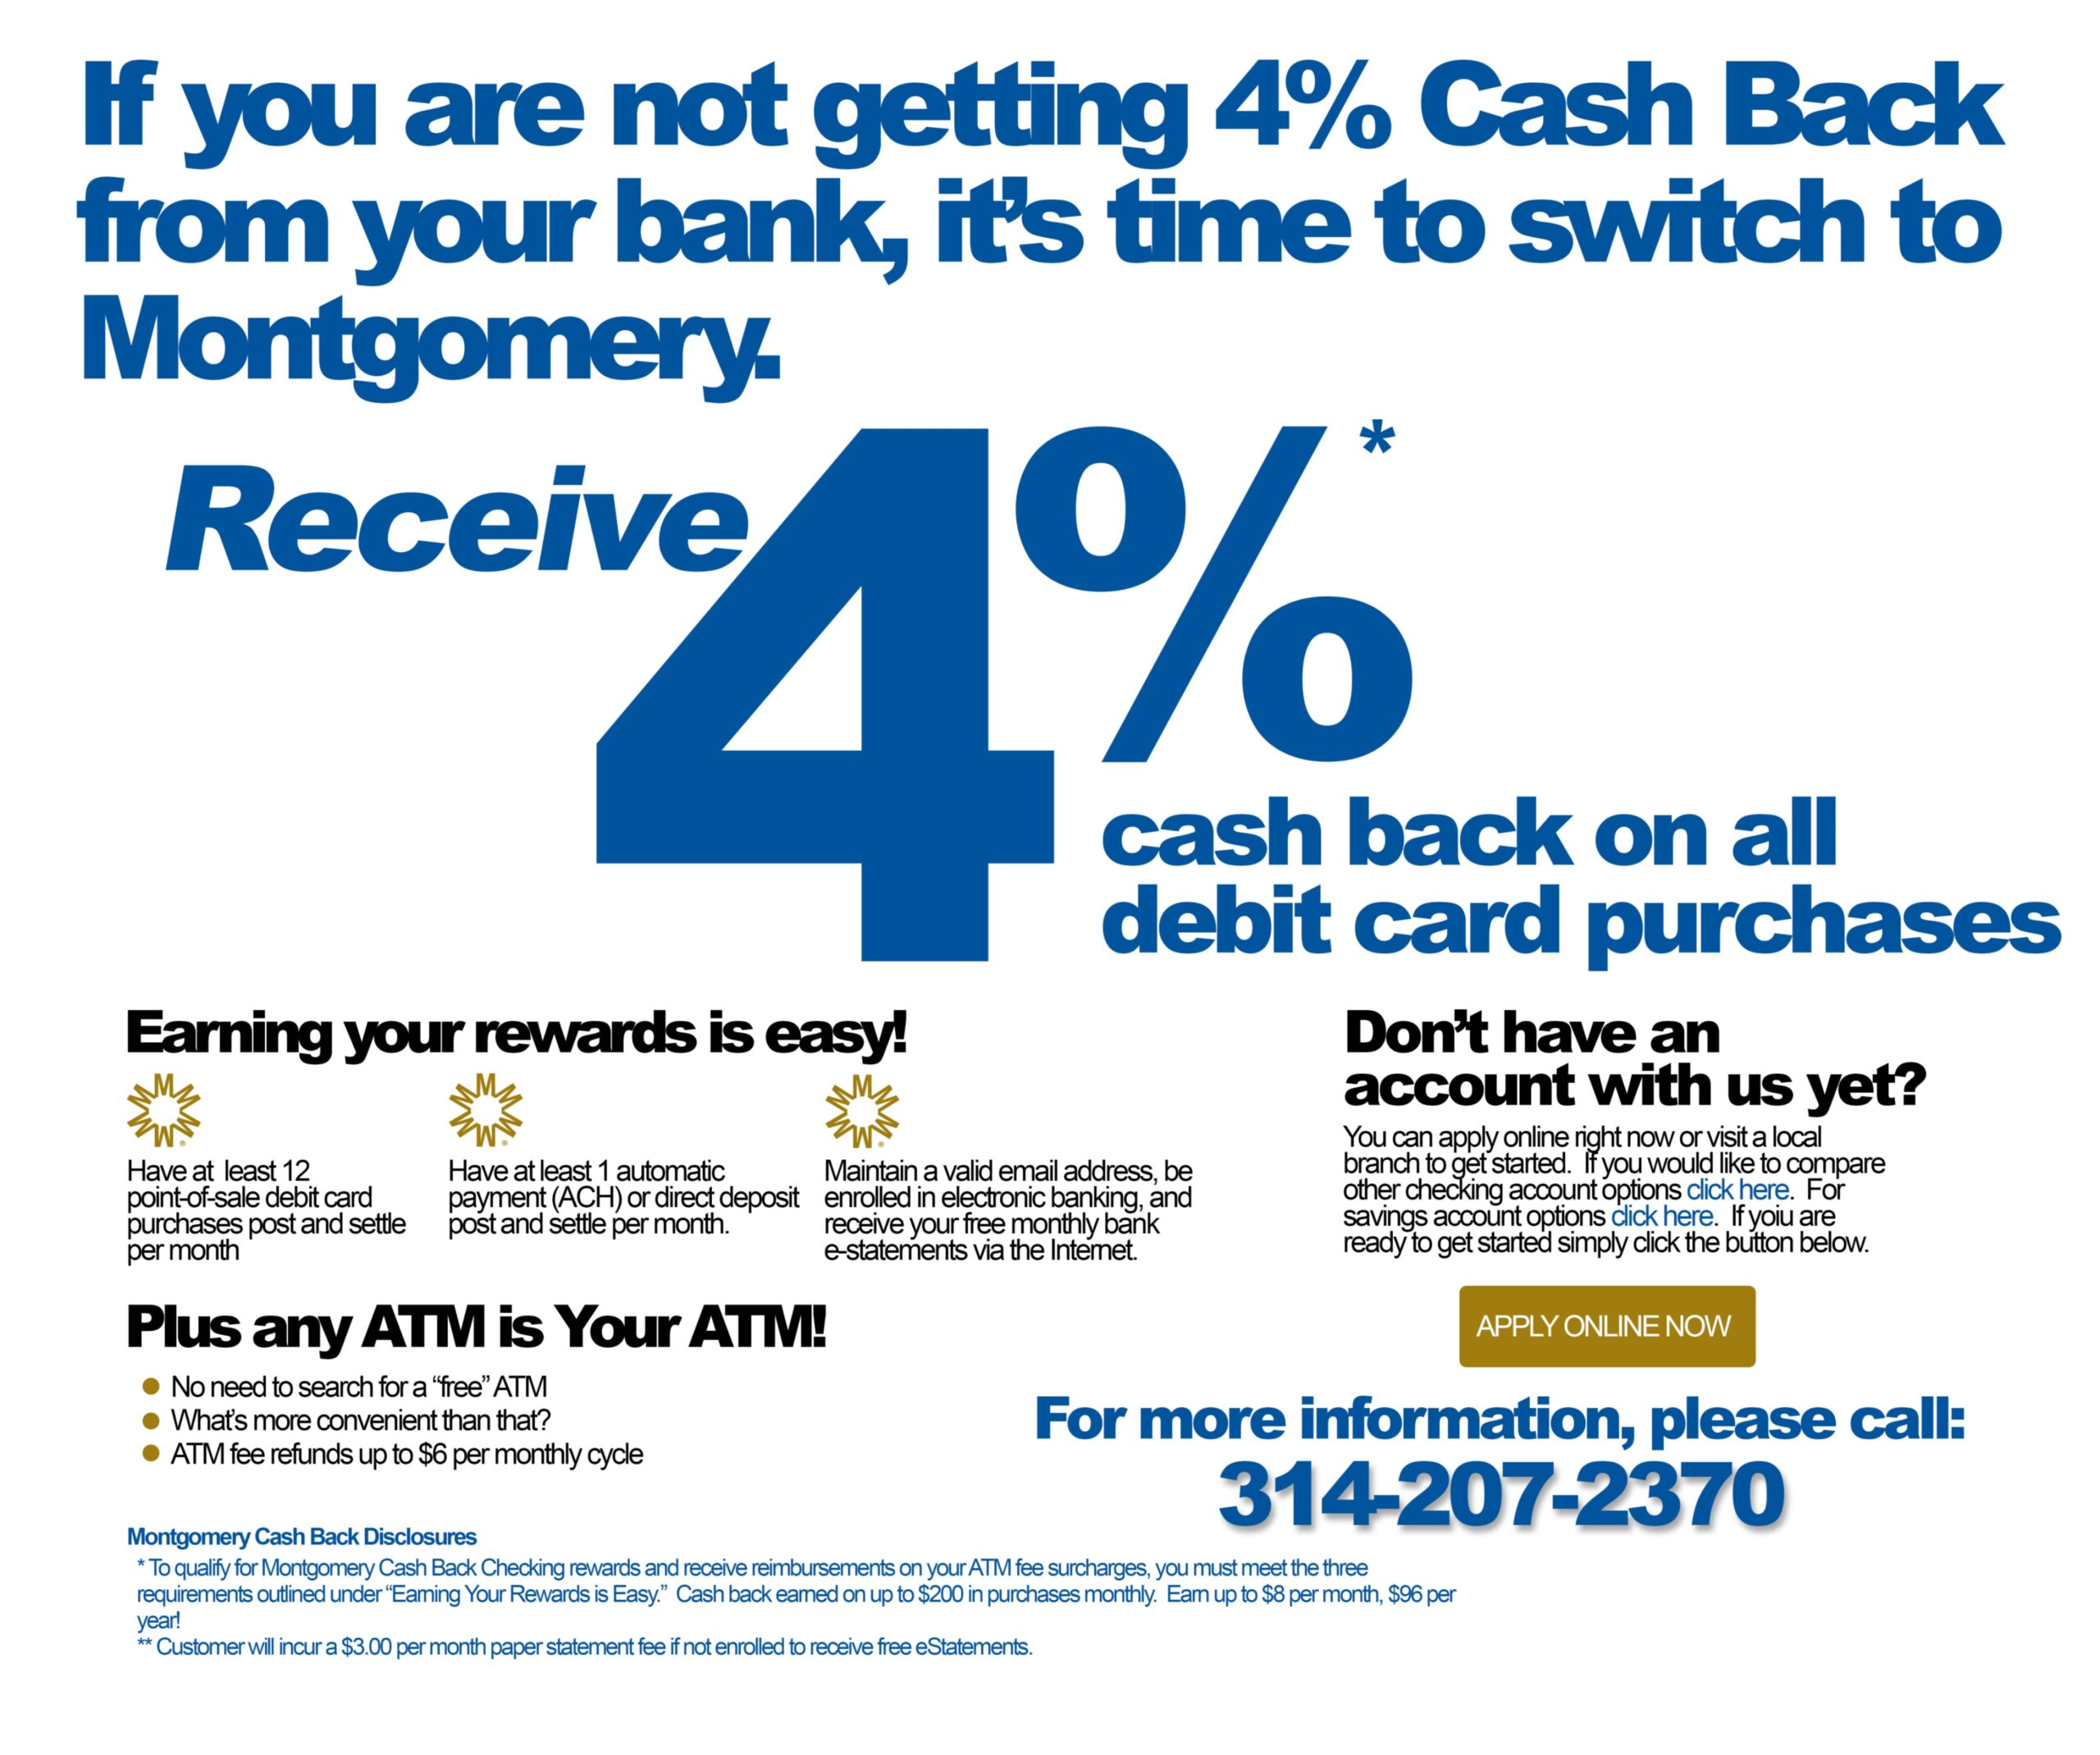 If you are not getting 4% cash back from your bank, it's time to switch to Montgomery. Receive 4$ cash back on all debit card purchases. To earn your rewards, have at least 12 point of sale debit card purchases post and settle per month, have at least 1 automatic payment (ACH) or direct deposit post and settle per month, and maintain a valid email address, be enroll in electronic banking and receive your free monthly bank e-statements via the internet. Also you can use any ATM as your ATM, no need to search for a free ATM.(ATM fee refunds up to $6 per monthly cycle). For more incation please call 314.207.2370